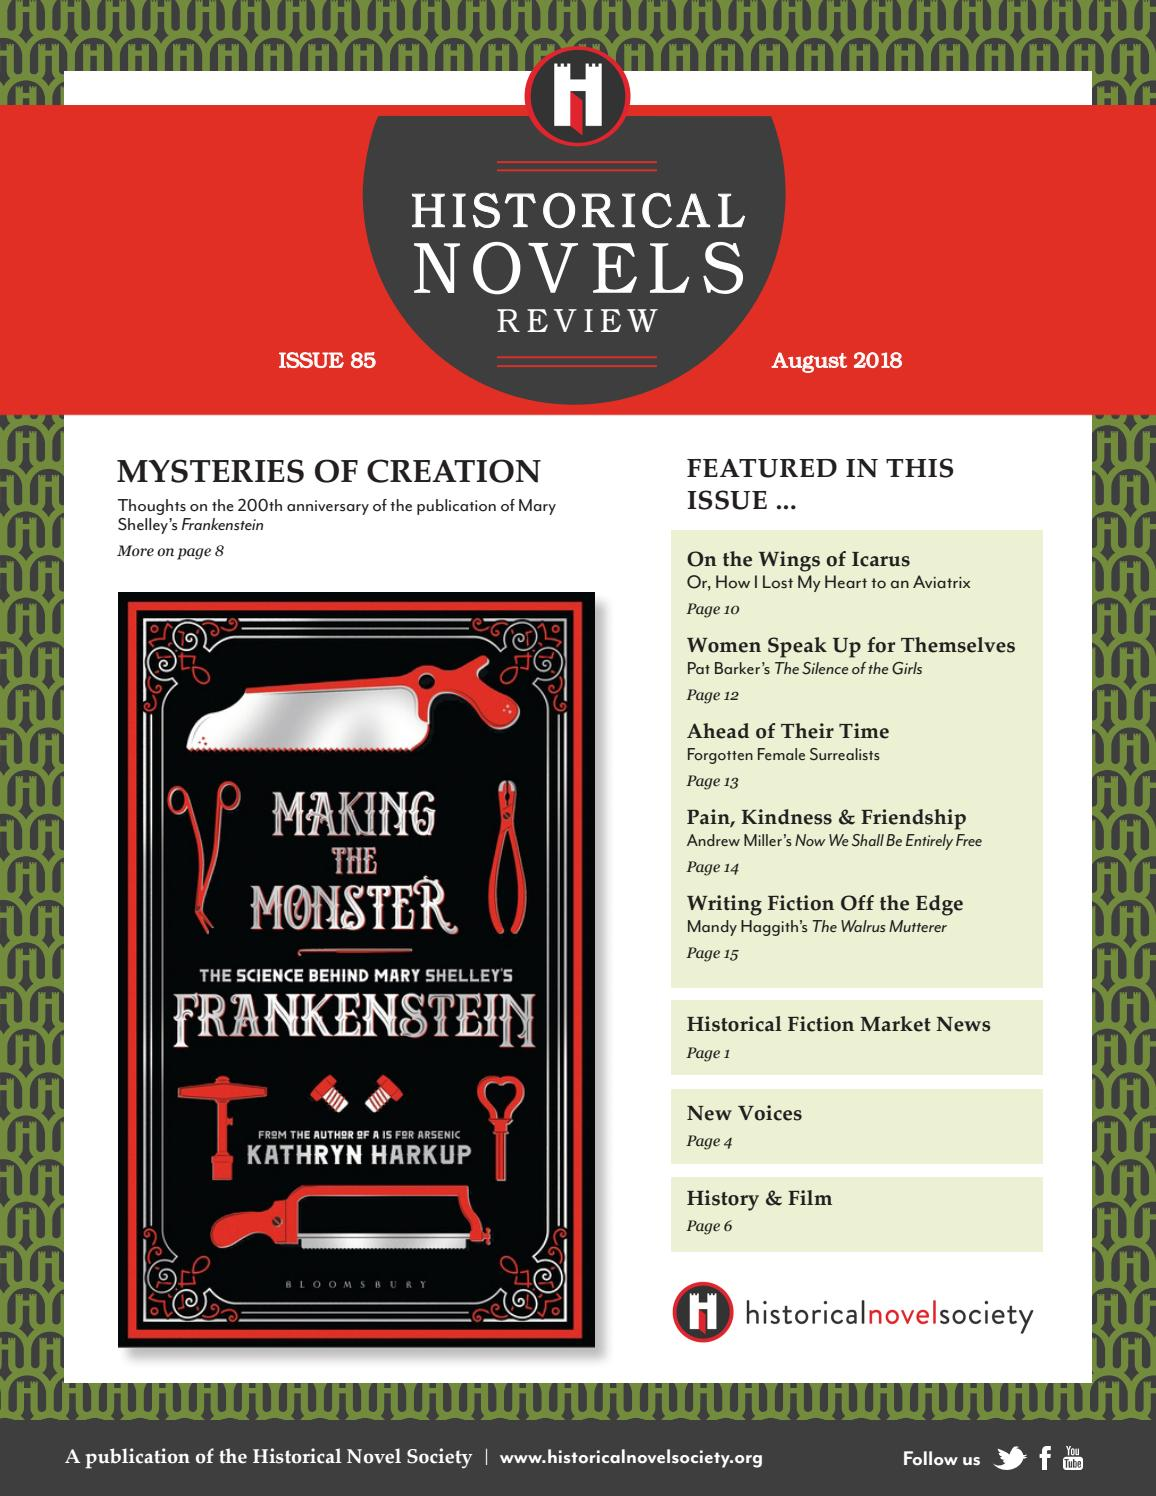 Historical Novels Review Issue 85 August 2018 By The